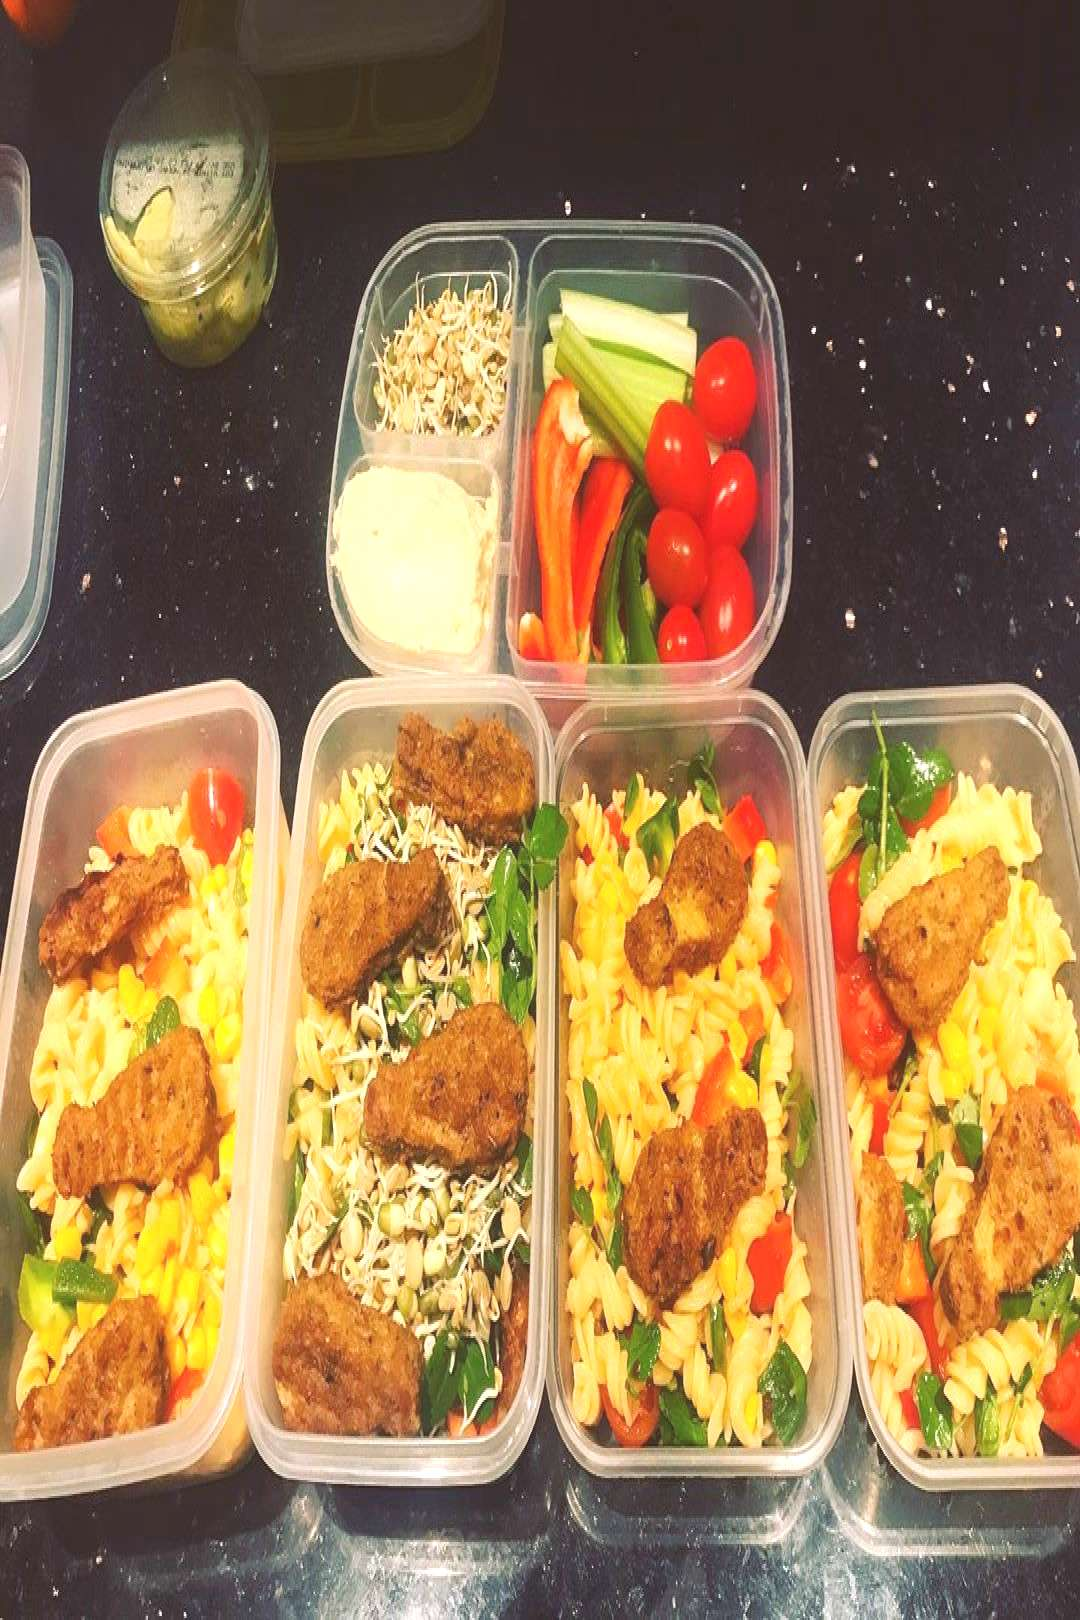 Some of my meals from the week. Keeping it simple its been one h